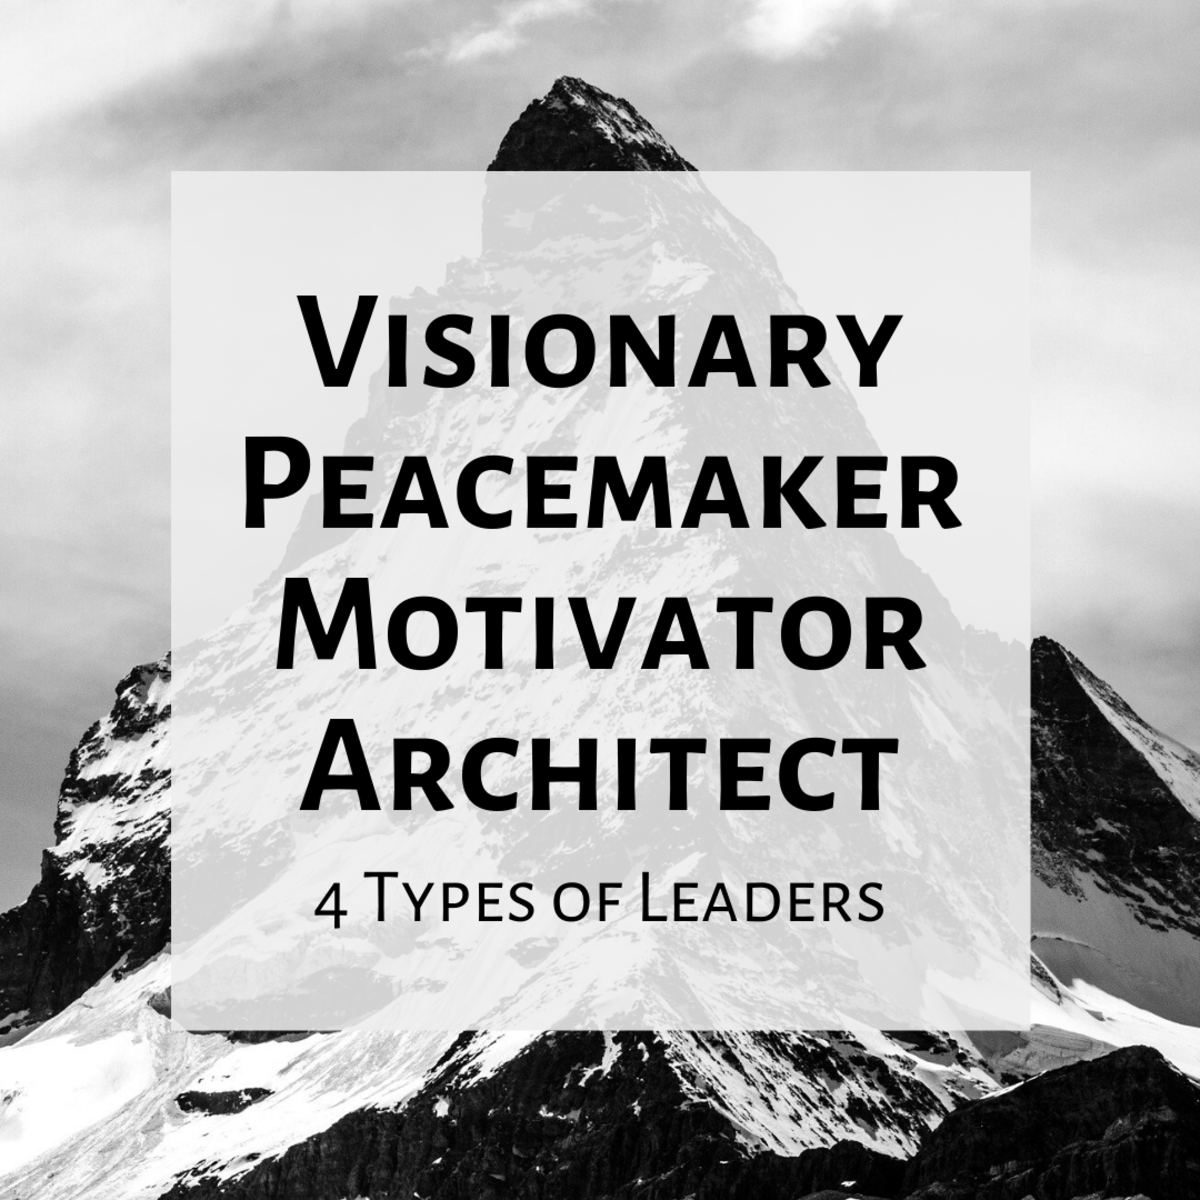 The Four Types of Leaders